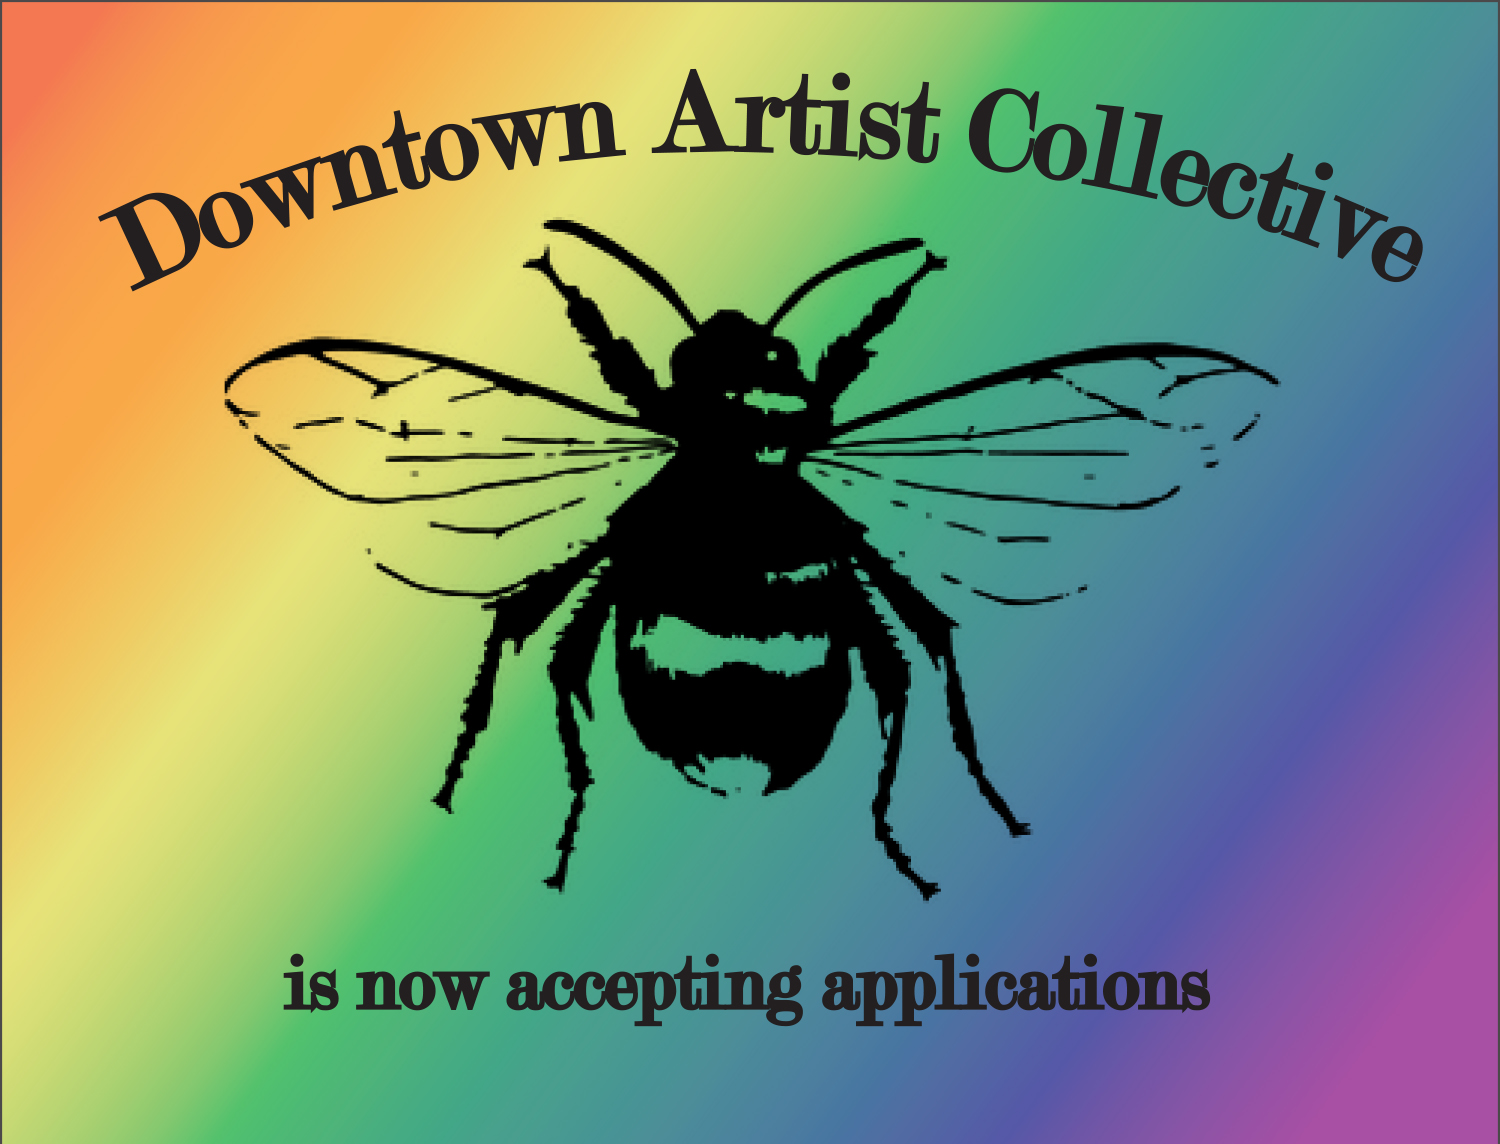 Downtown Artist Collective is now accepting applications for membership and for our Holiday Market and boutique! Artists of all media who are current residents of Utah are invited to apply. -